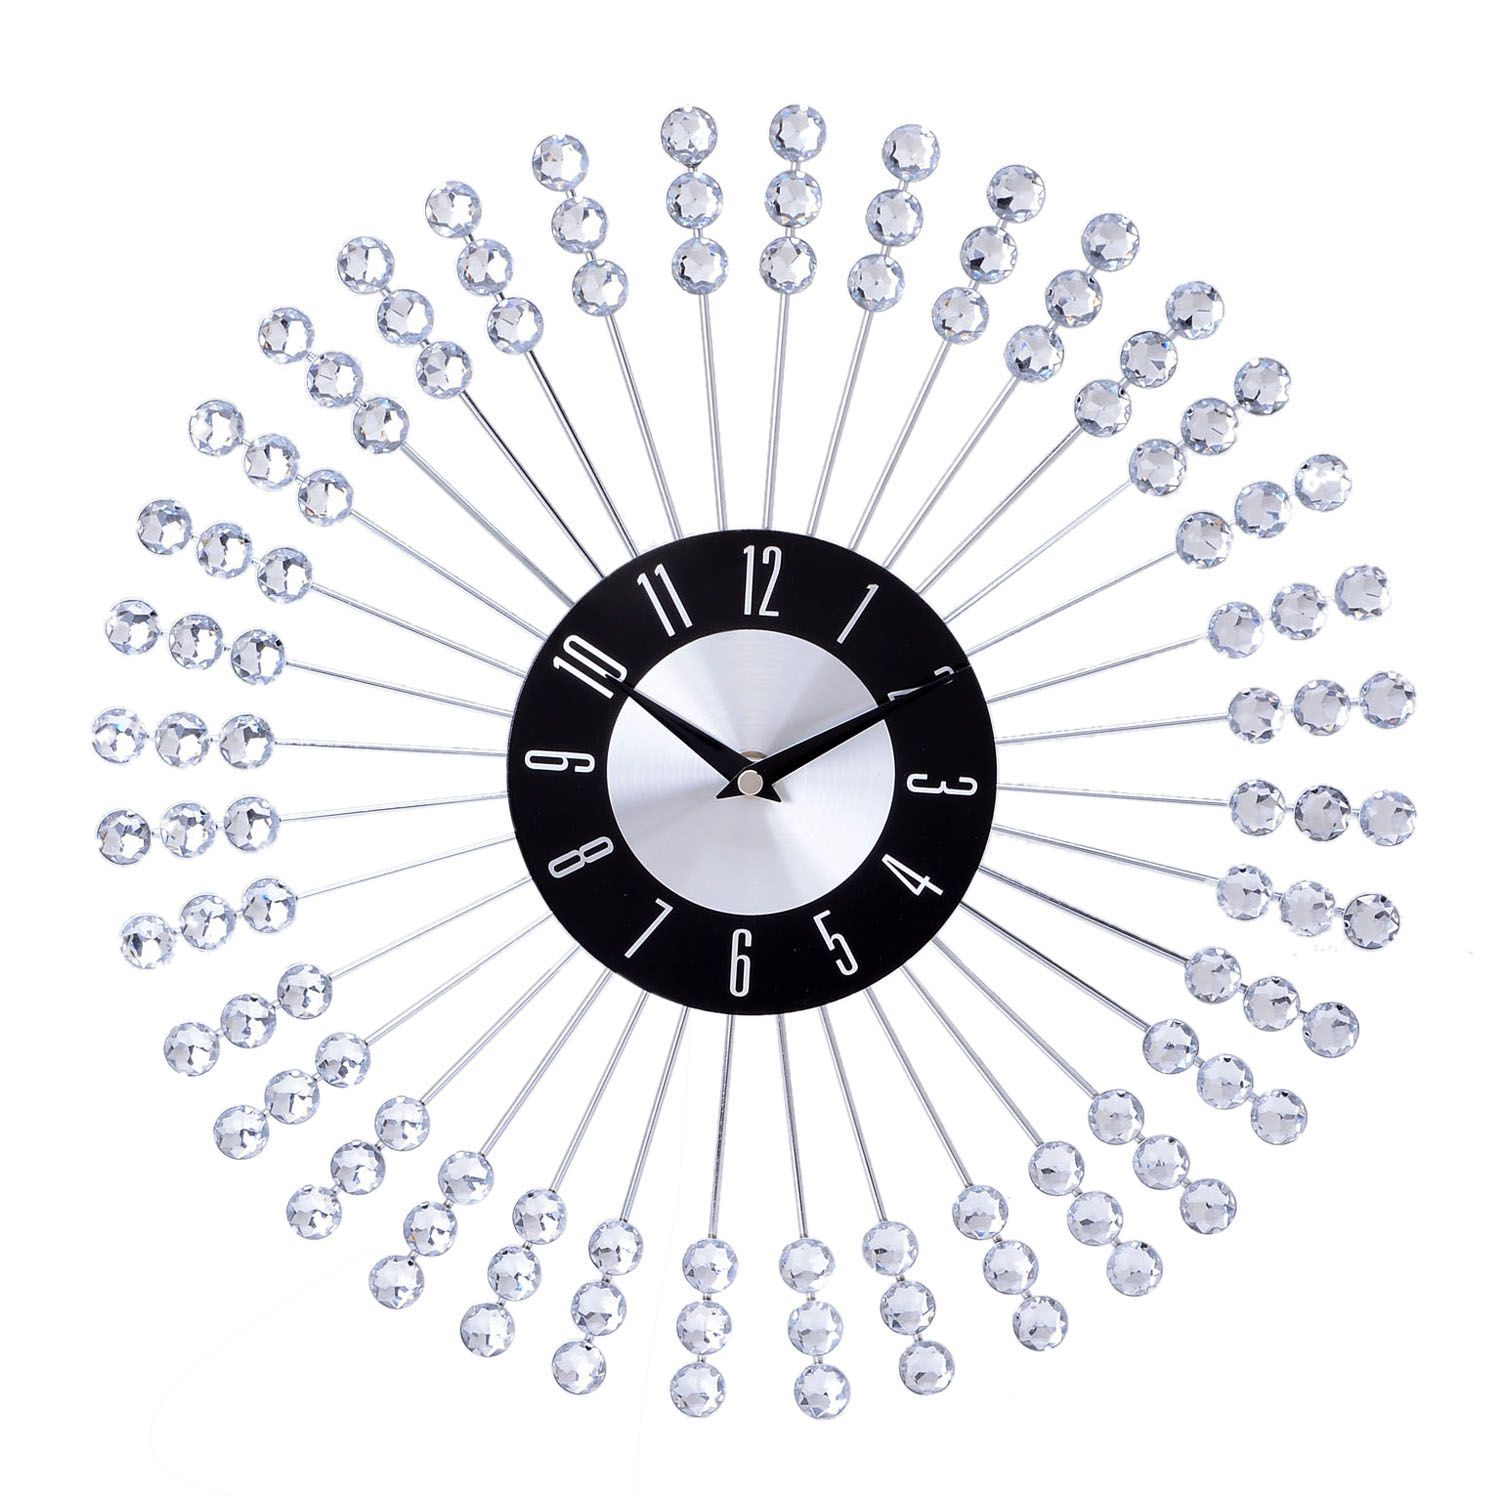 Sphere Wall Clock 15x15 in new markdowns promotions